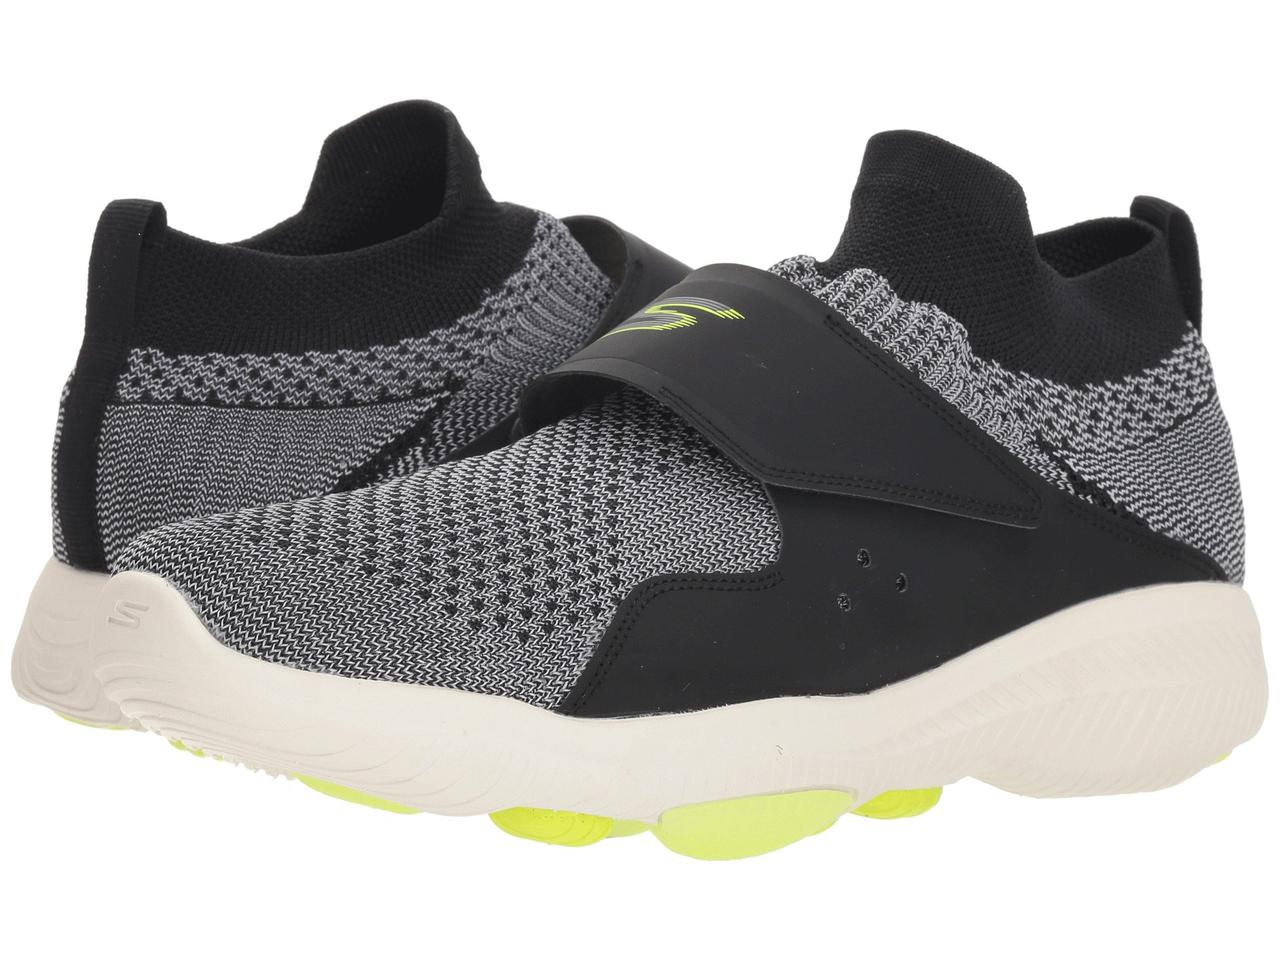 5185a21b6b19 Кроссовки Кеды (Оригинал) SKECHERS Performance Go Walk Revolution Ultra  Revolve Black Lime